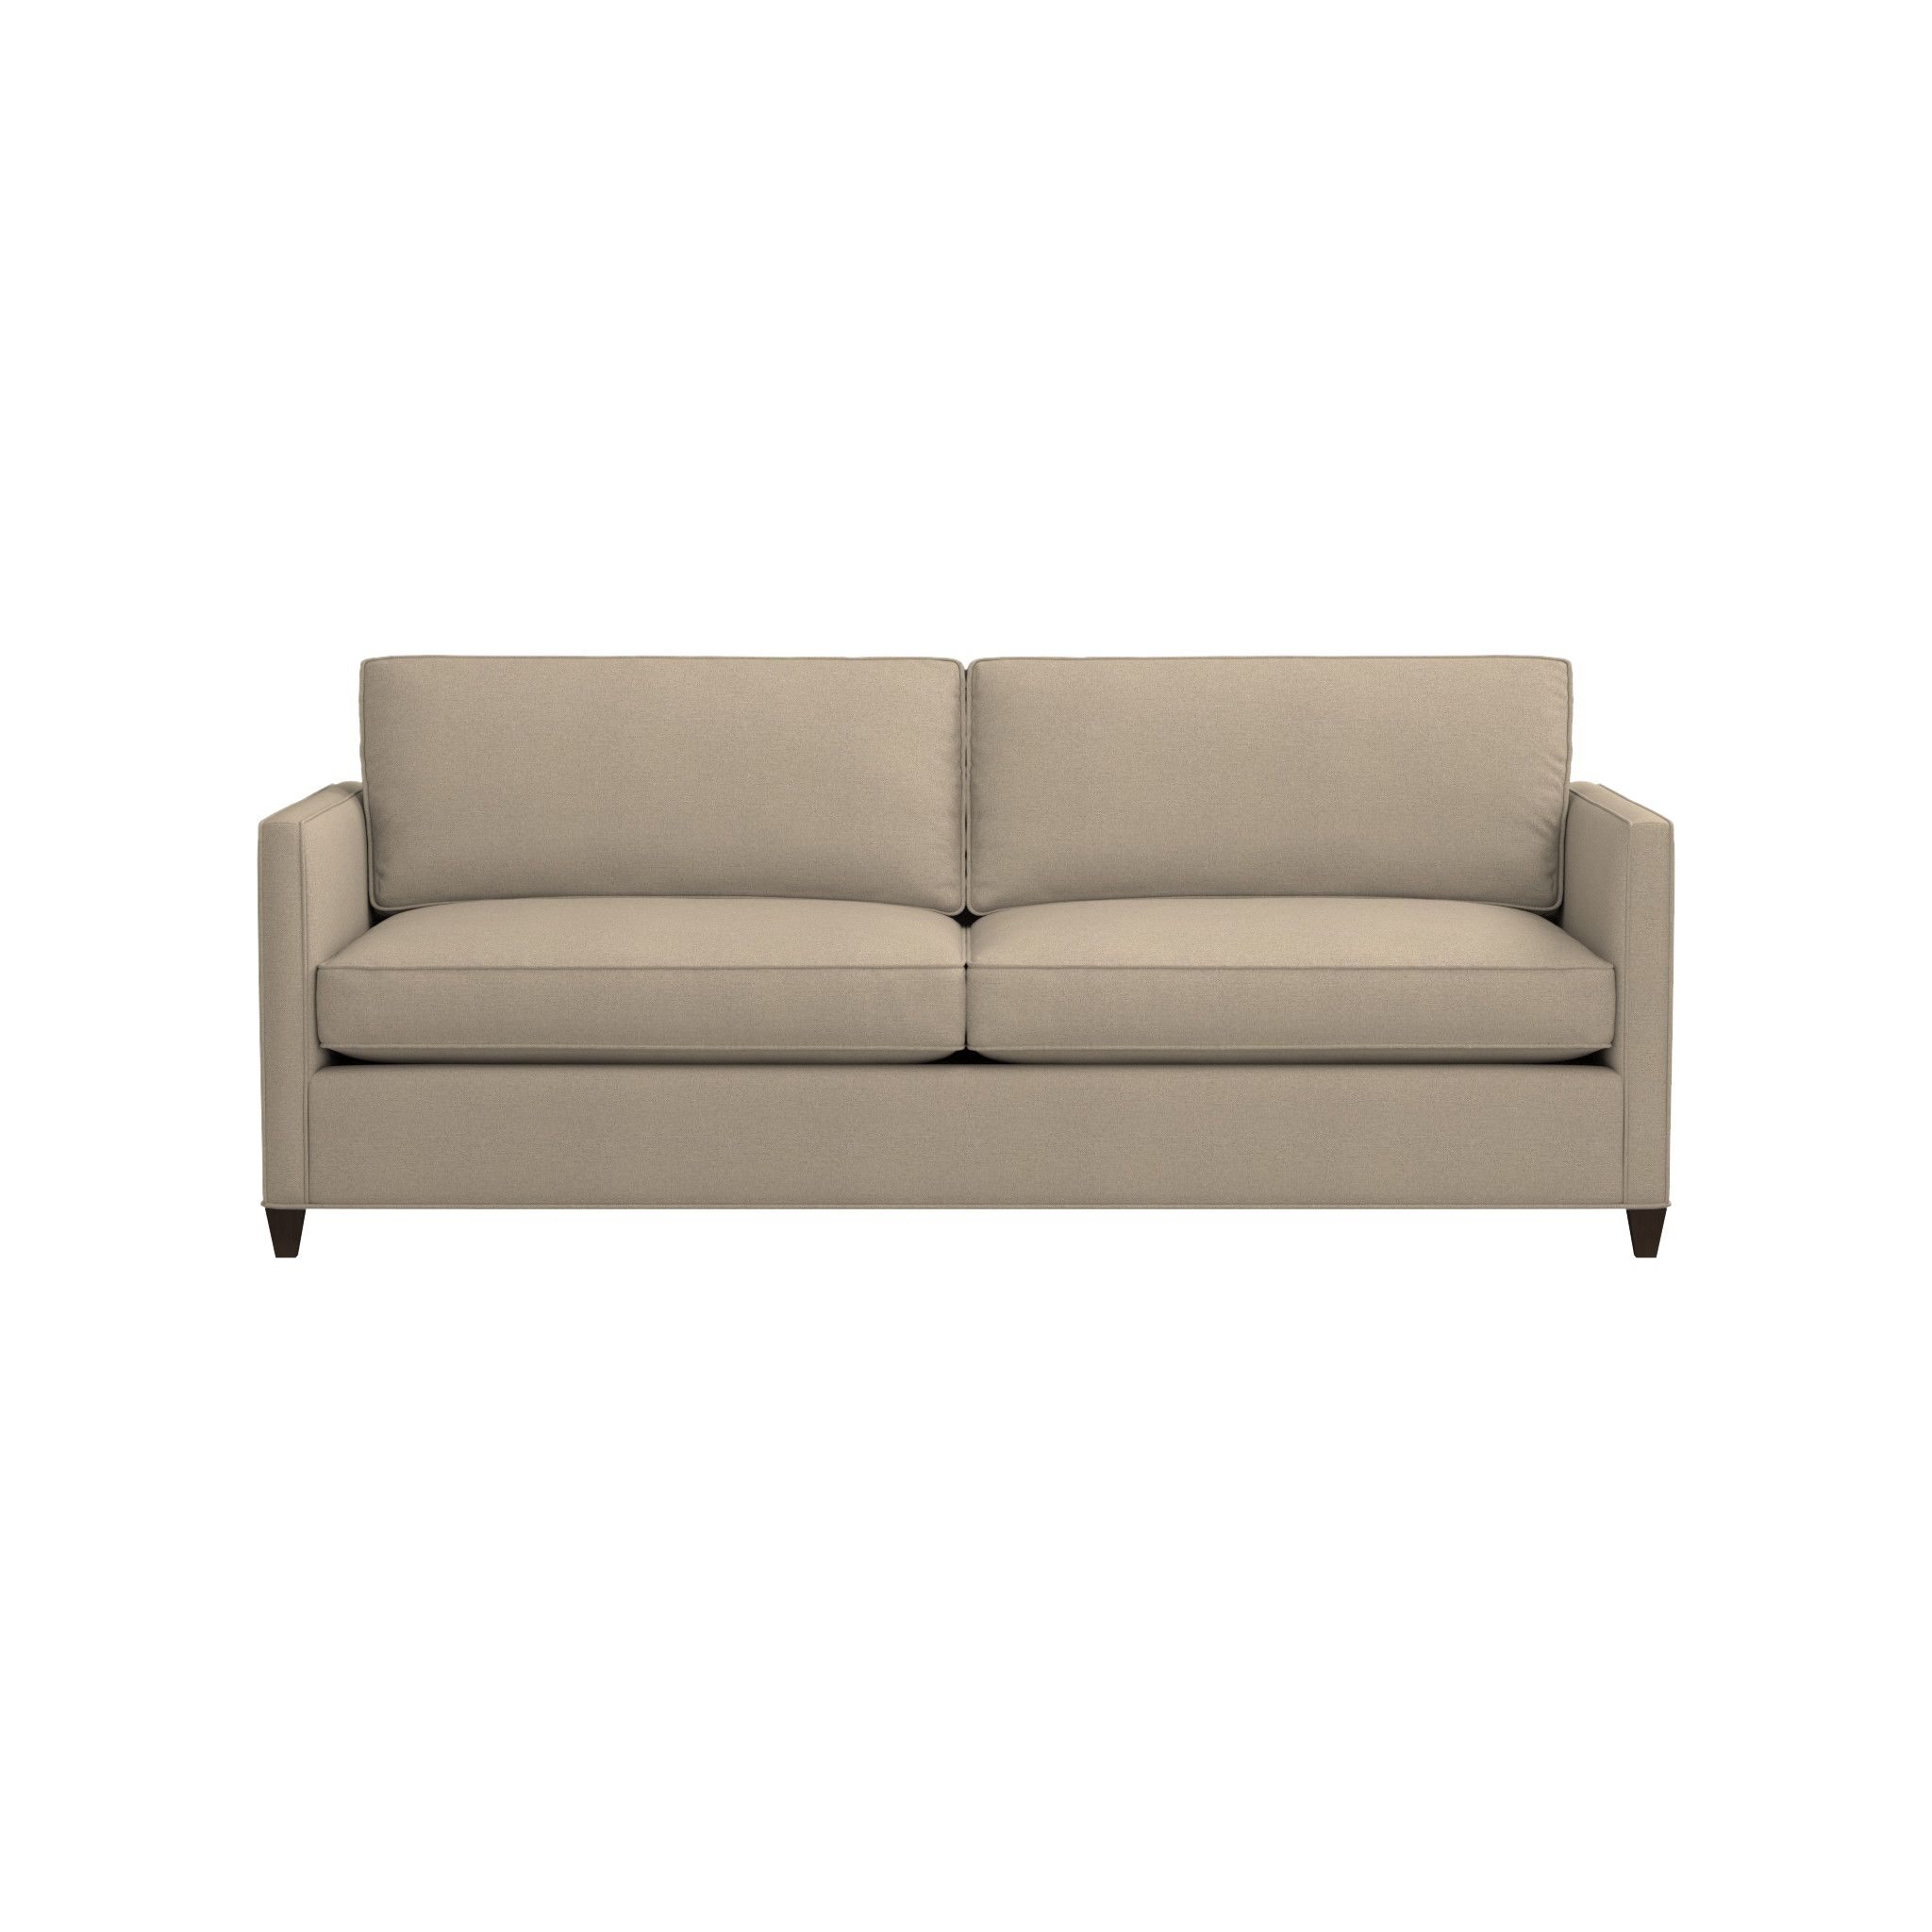 Dryden Queen Sleeper Sofa | Crate And Barrel throughout Crate And Barrel Sleeper Sofas (Image 9 of 15)